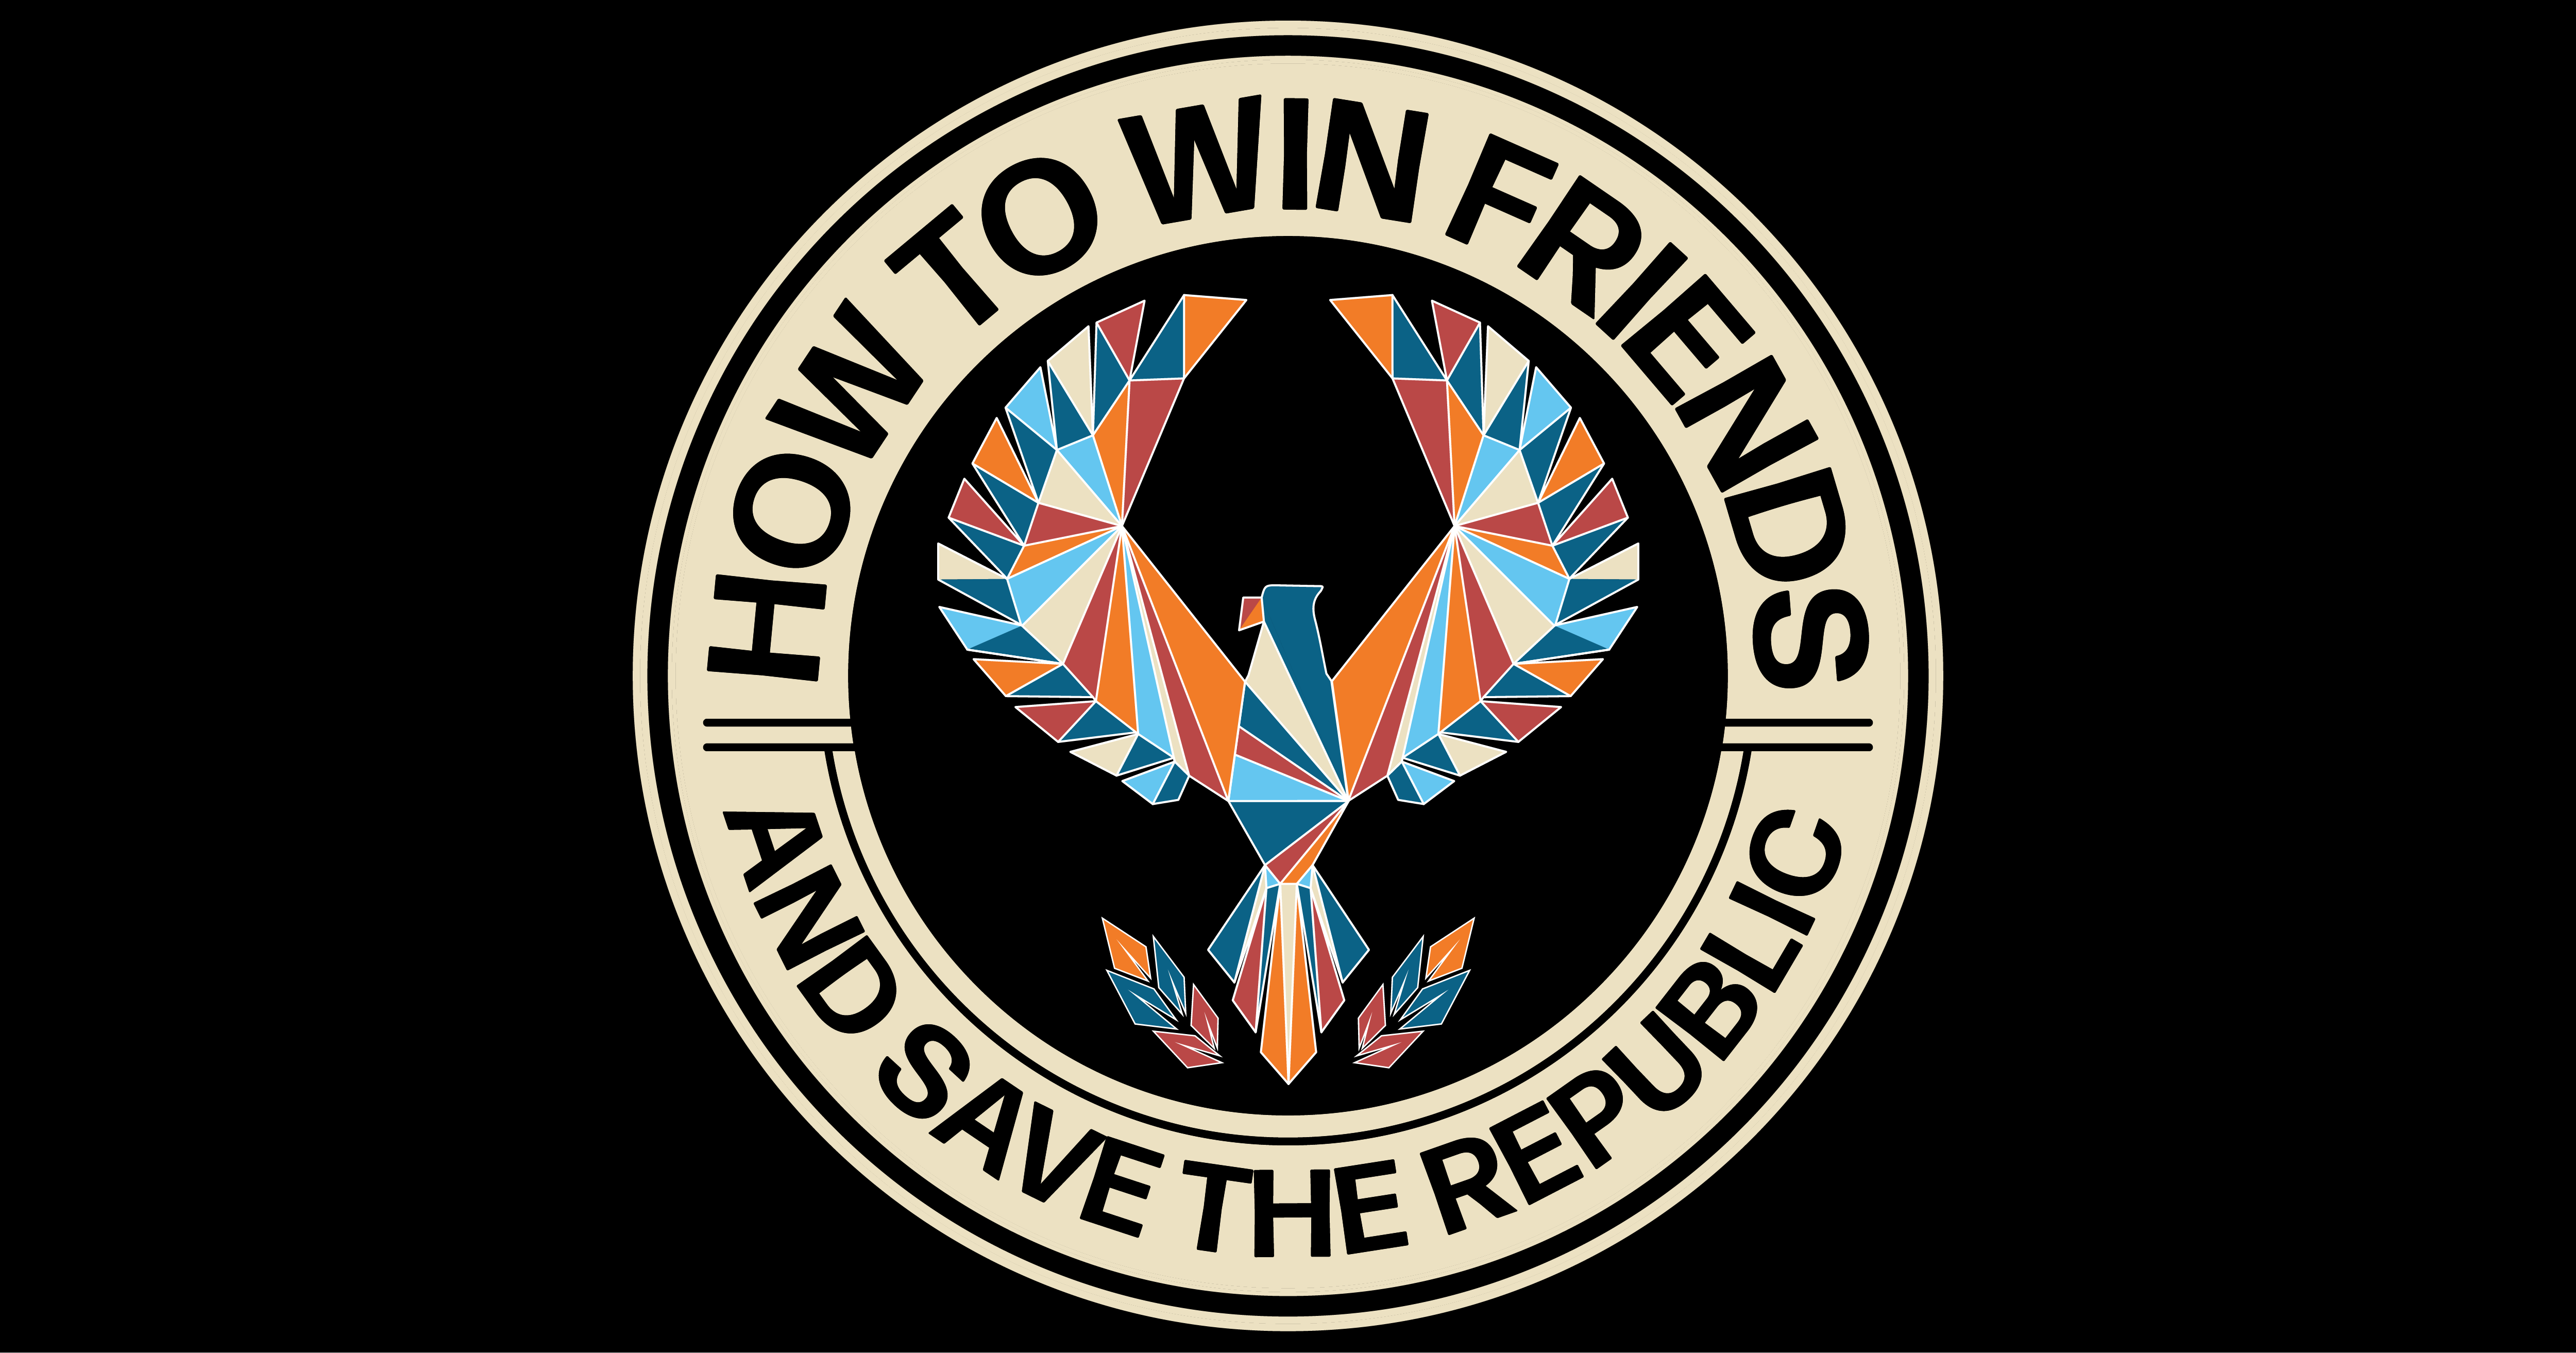 How to Win Friends and Save the Republic